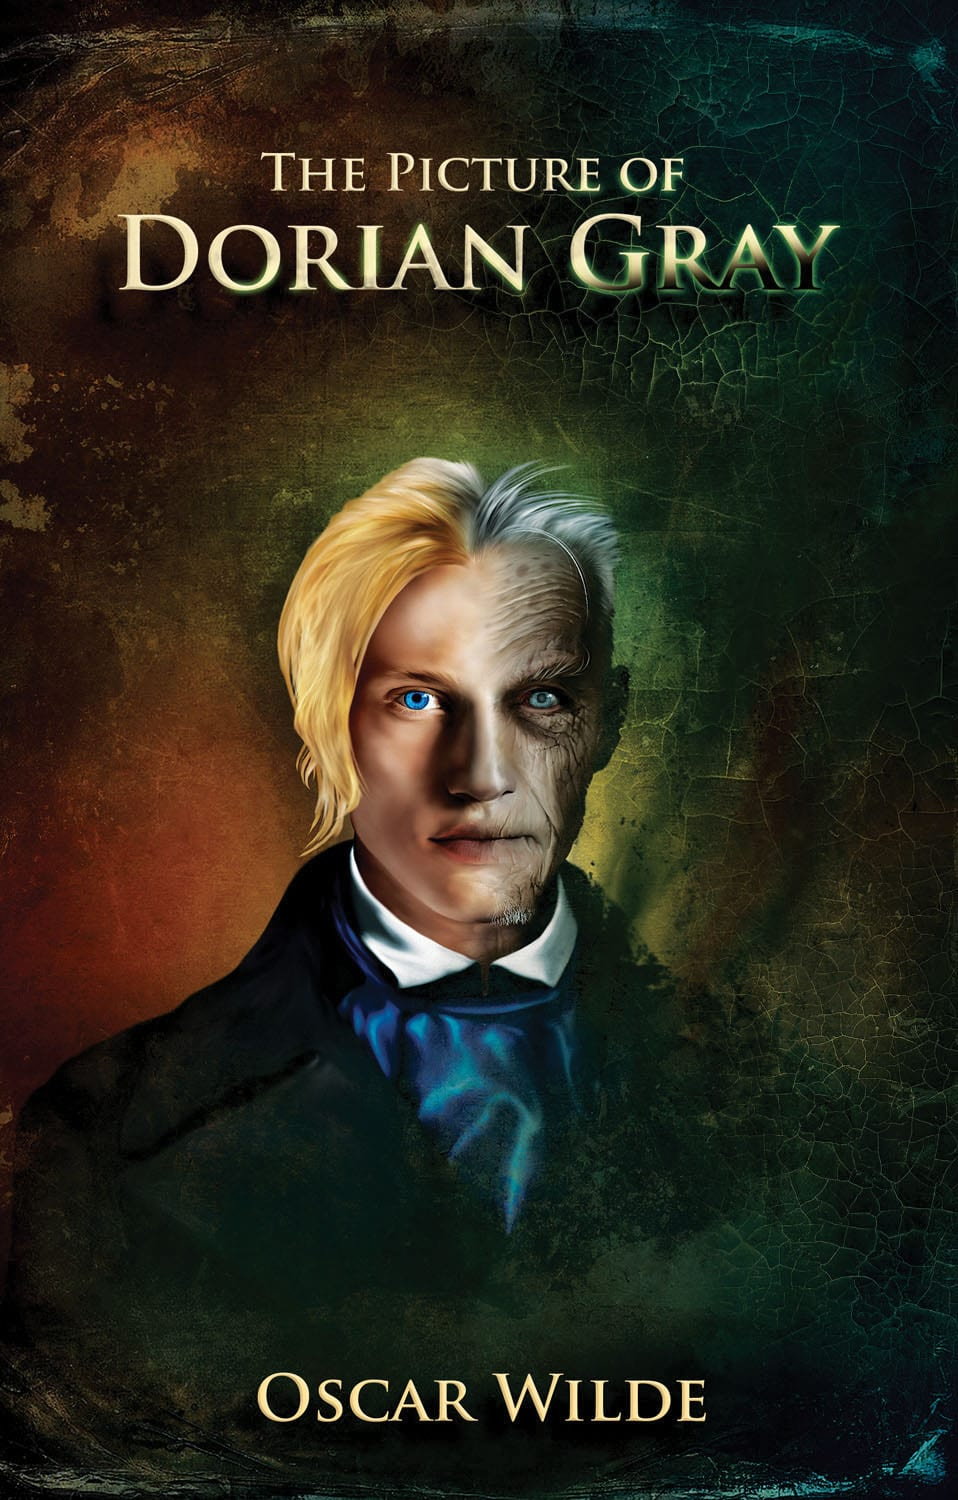 """a literary analysis of the picture of dorian gray by oscar wilde Oscar wilde was not a man who lived in fear, but early reviews of """"the picture of dorian gray"""" must have given him pause the story, telling of a man who never ages while his portrait turns."""